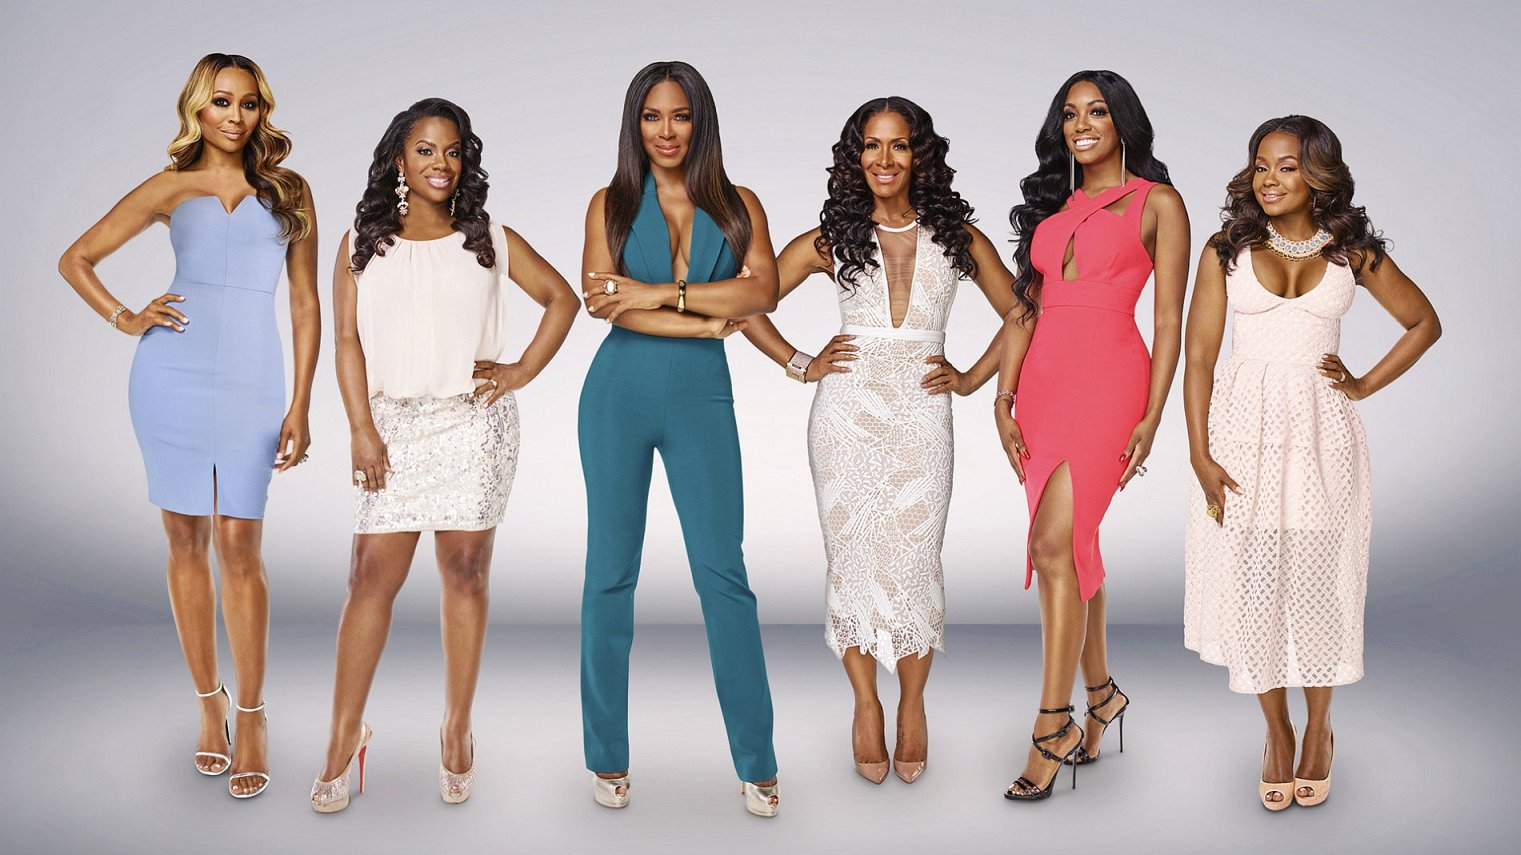 The Real Housewives of Atlanta season 11 air time